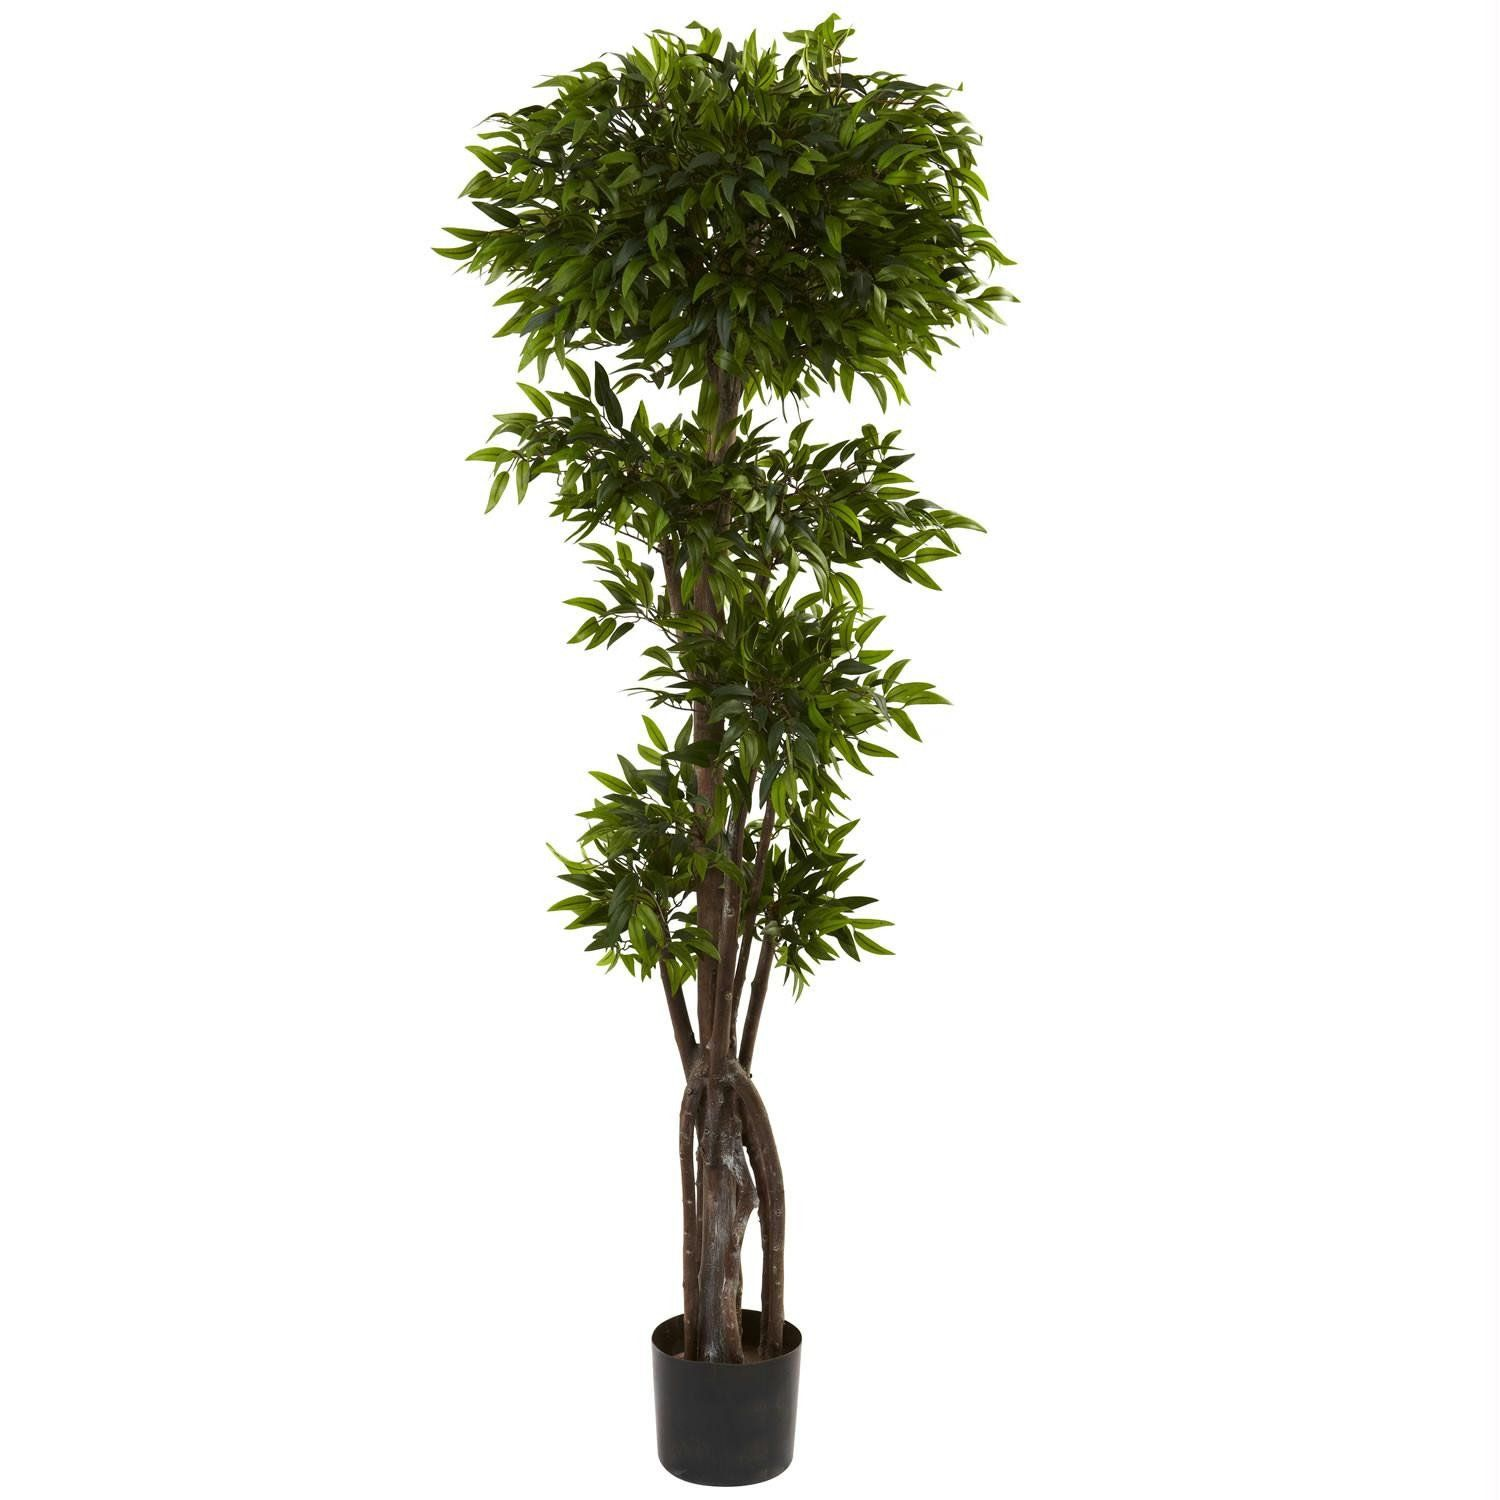 Ft ruscus tree products